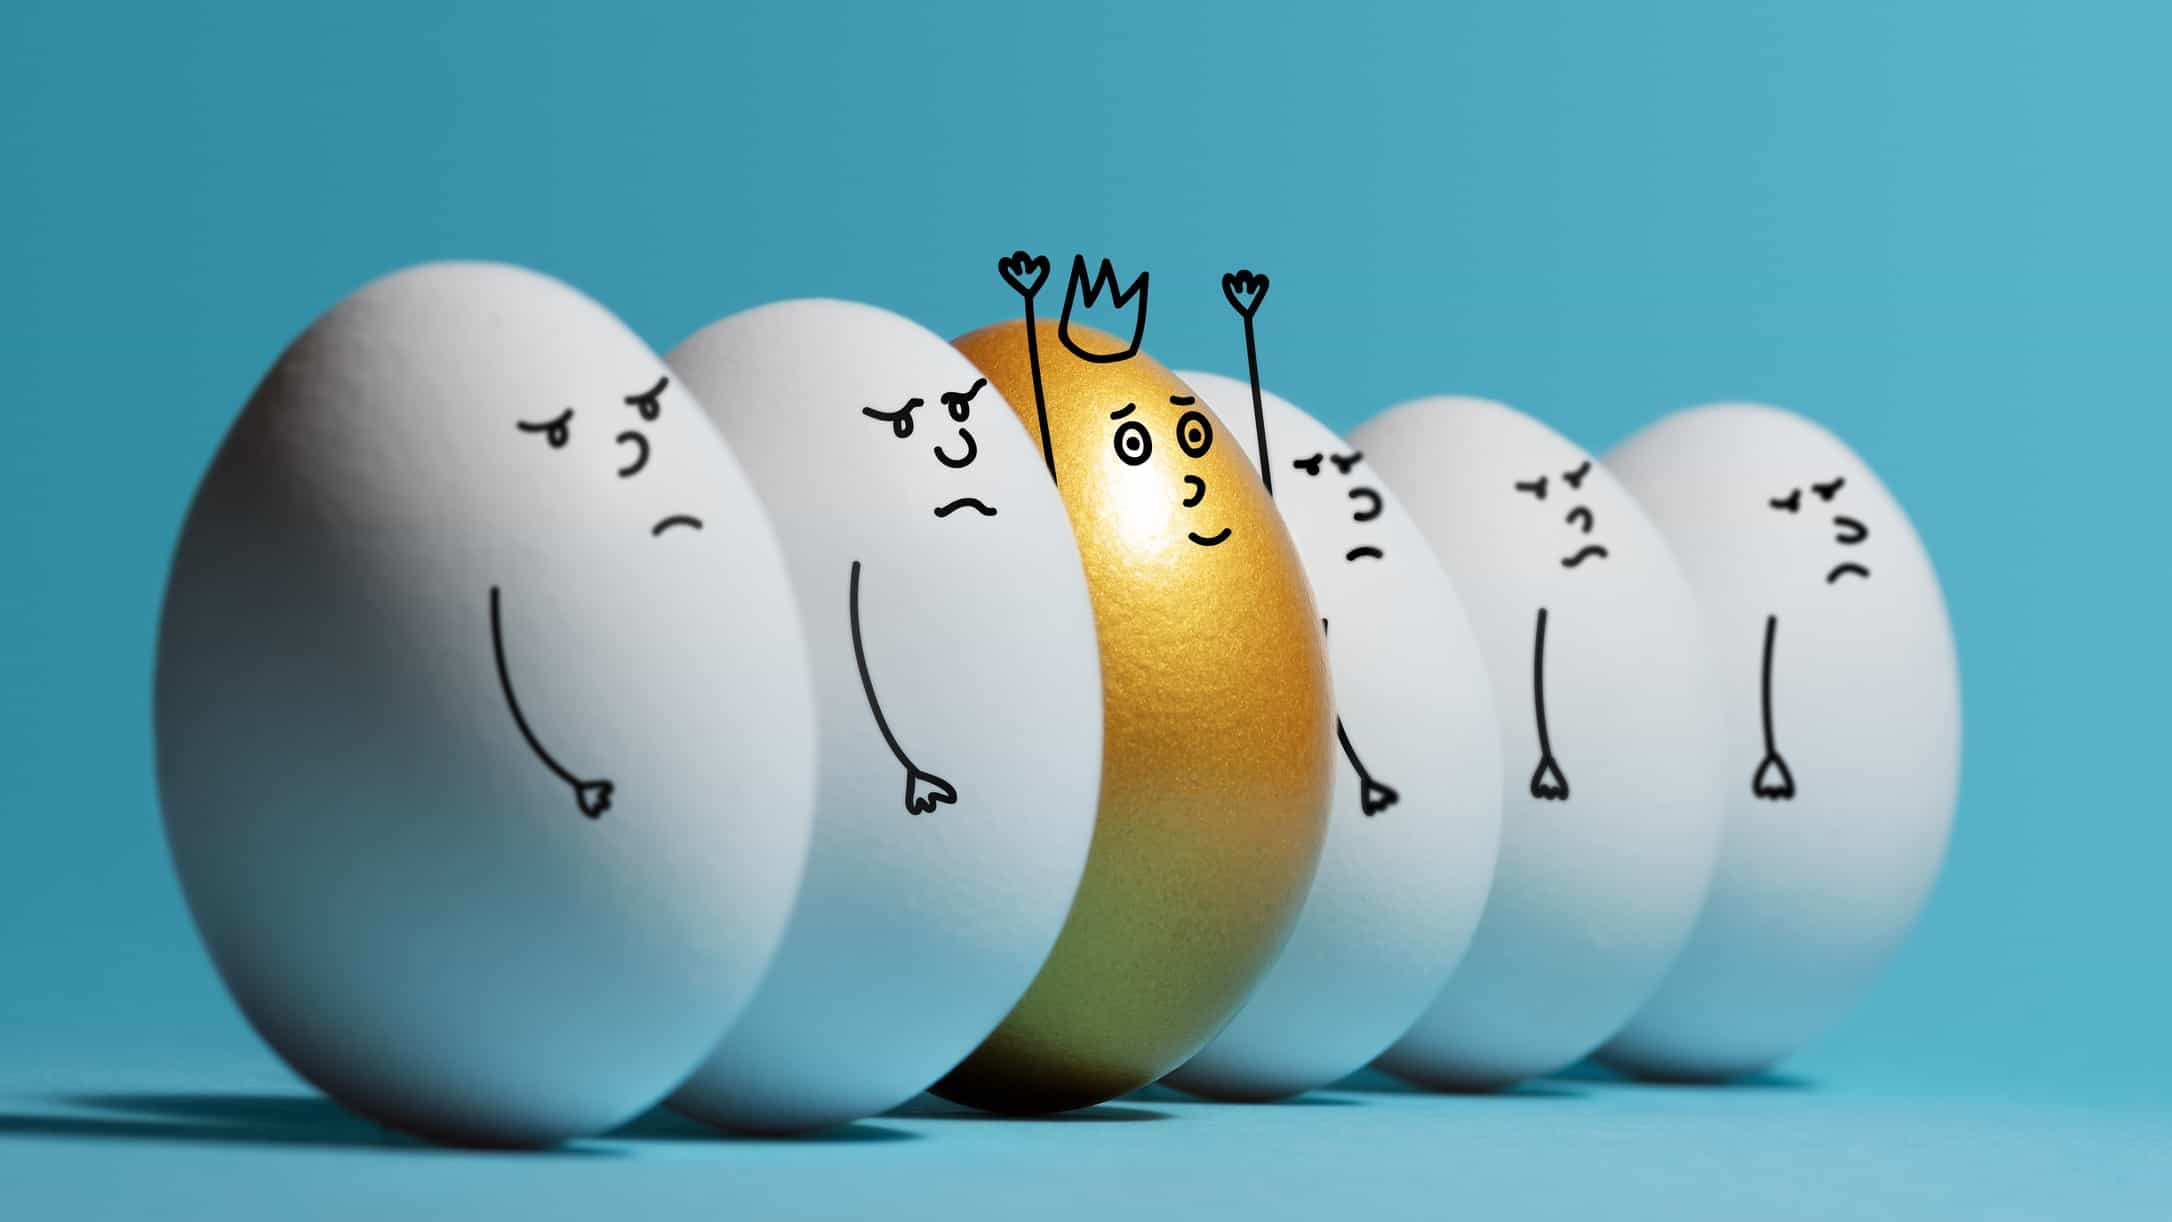 row of white eggs with cartoon sad faces with one gold egg with happy face and crown representing high performing asx share